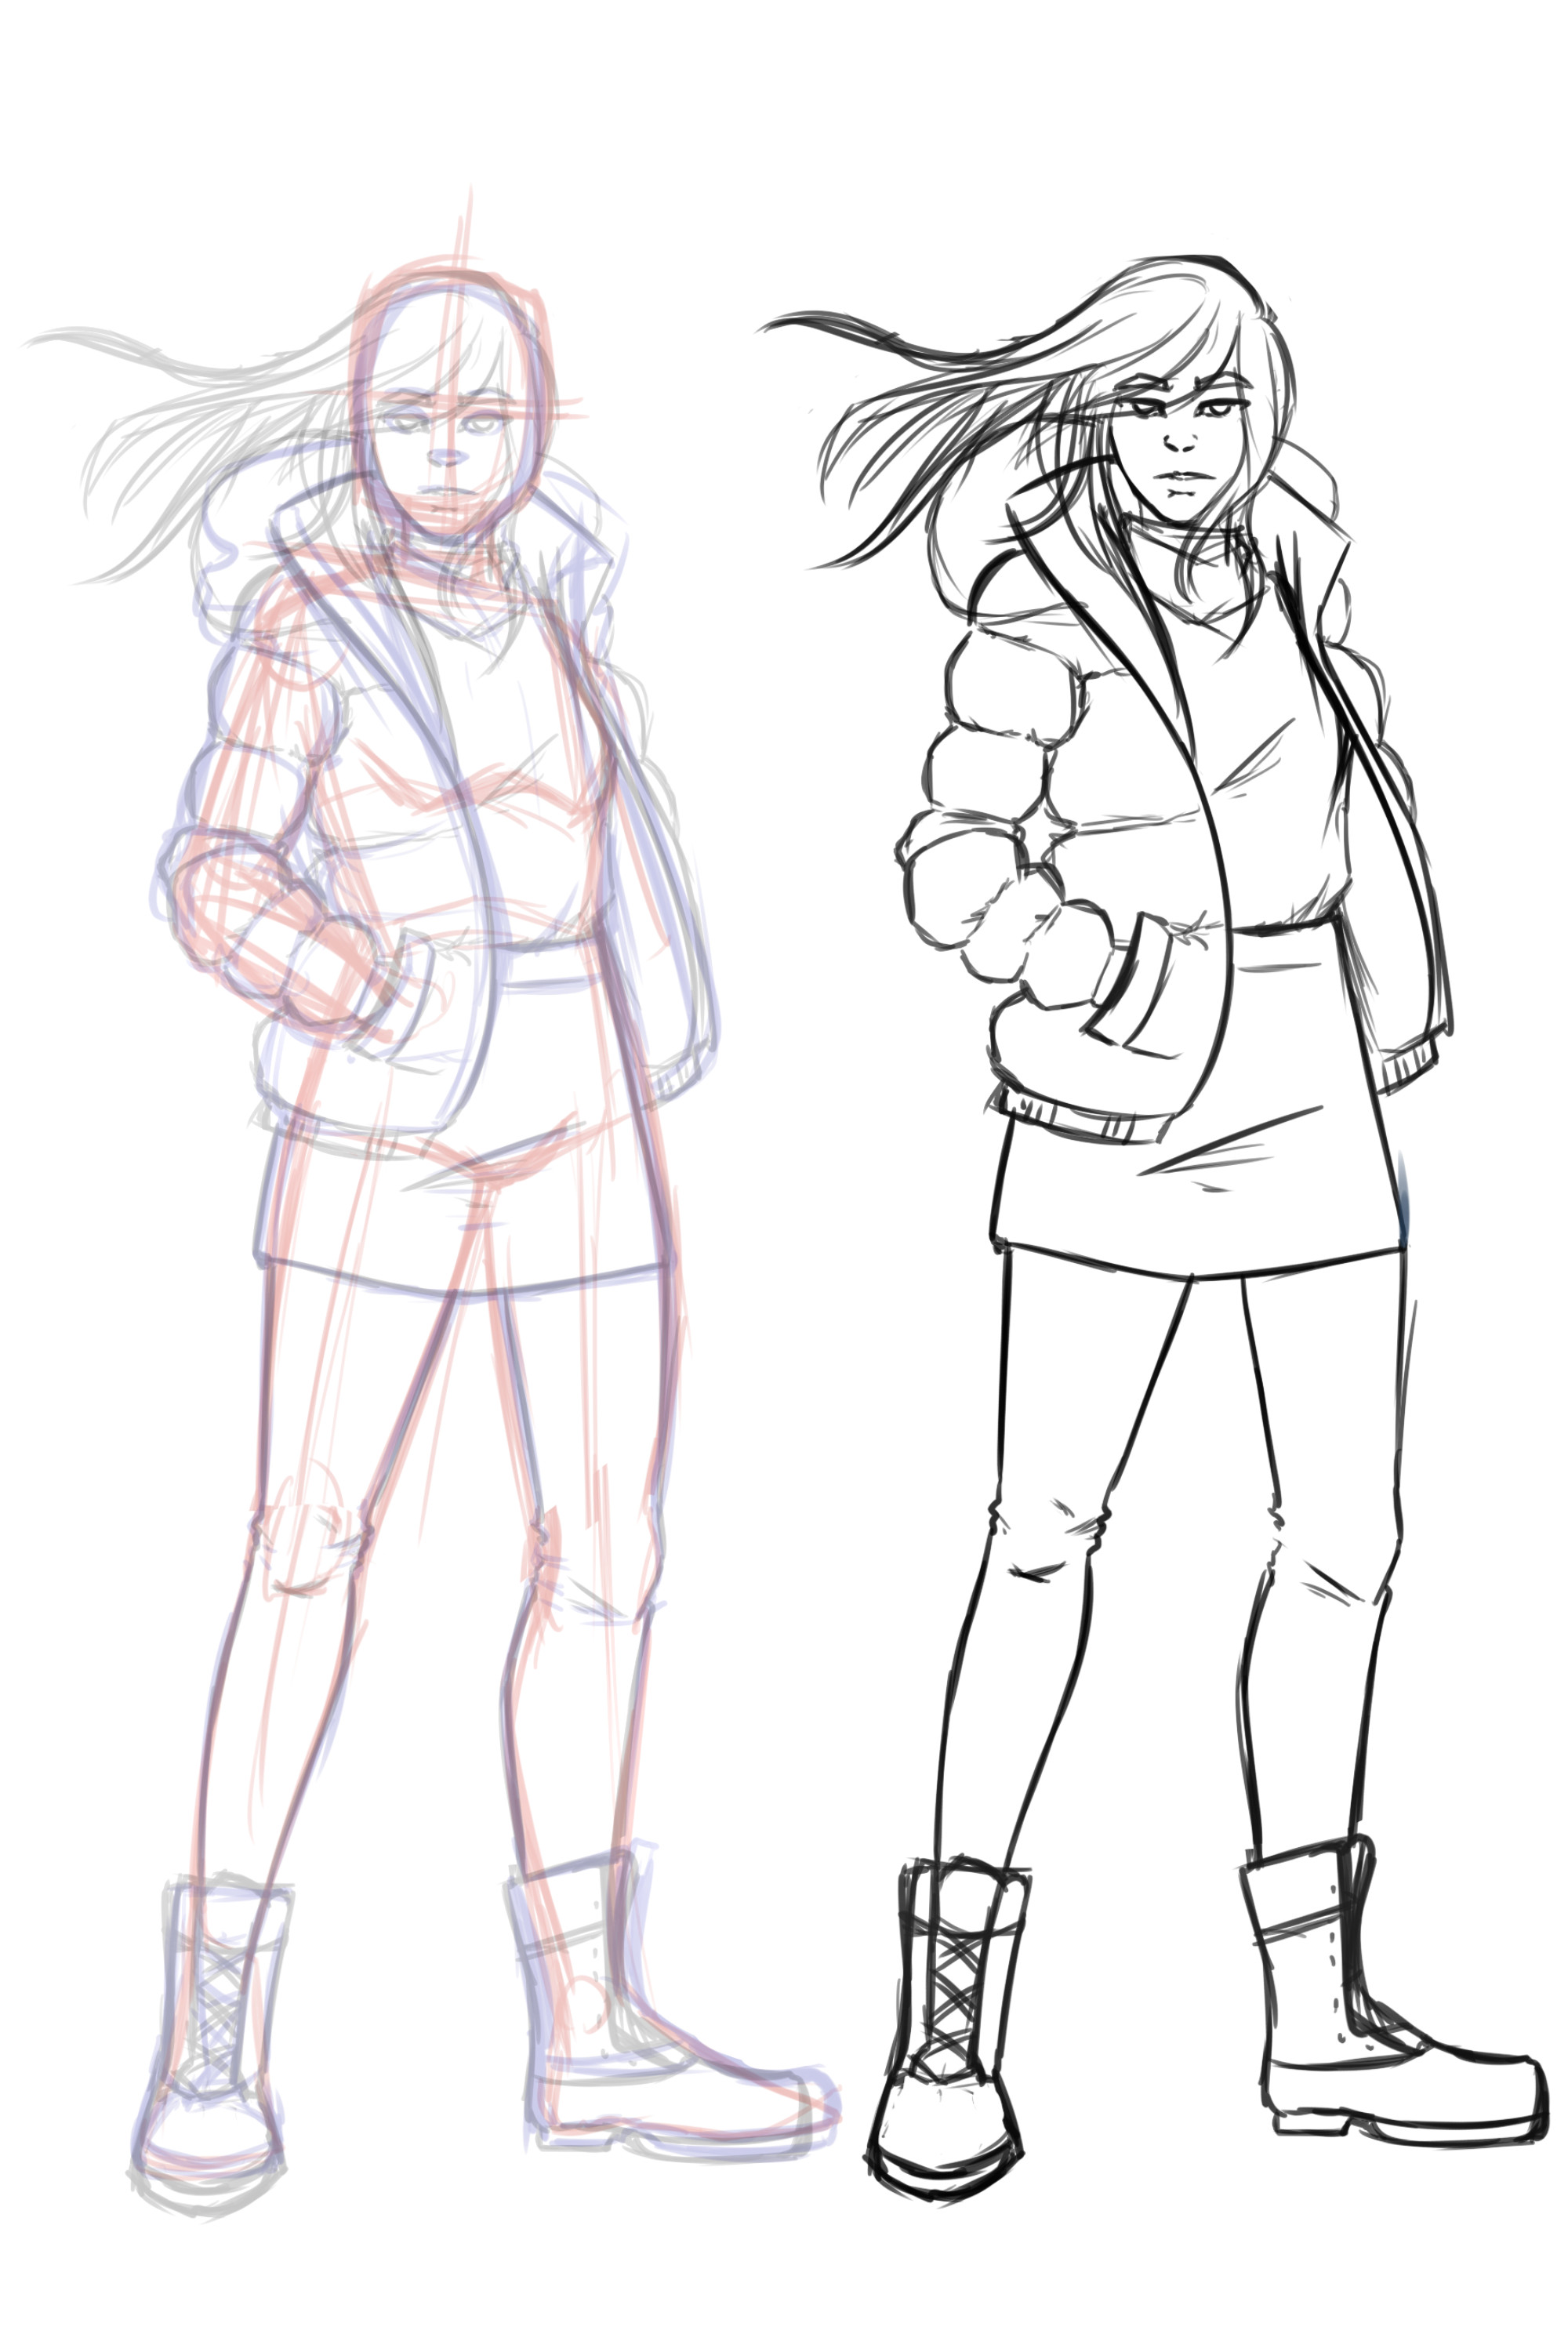 Initial sketch and final sketch